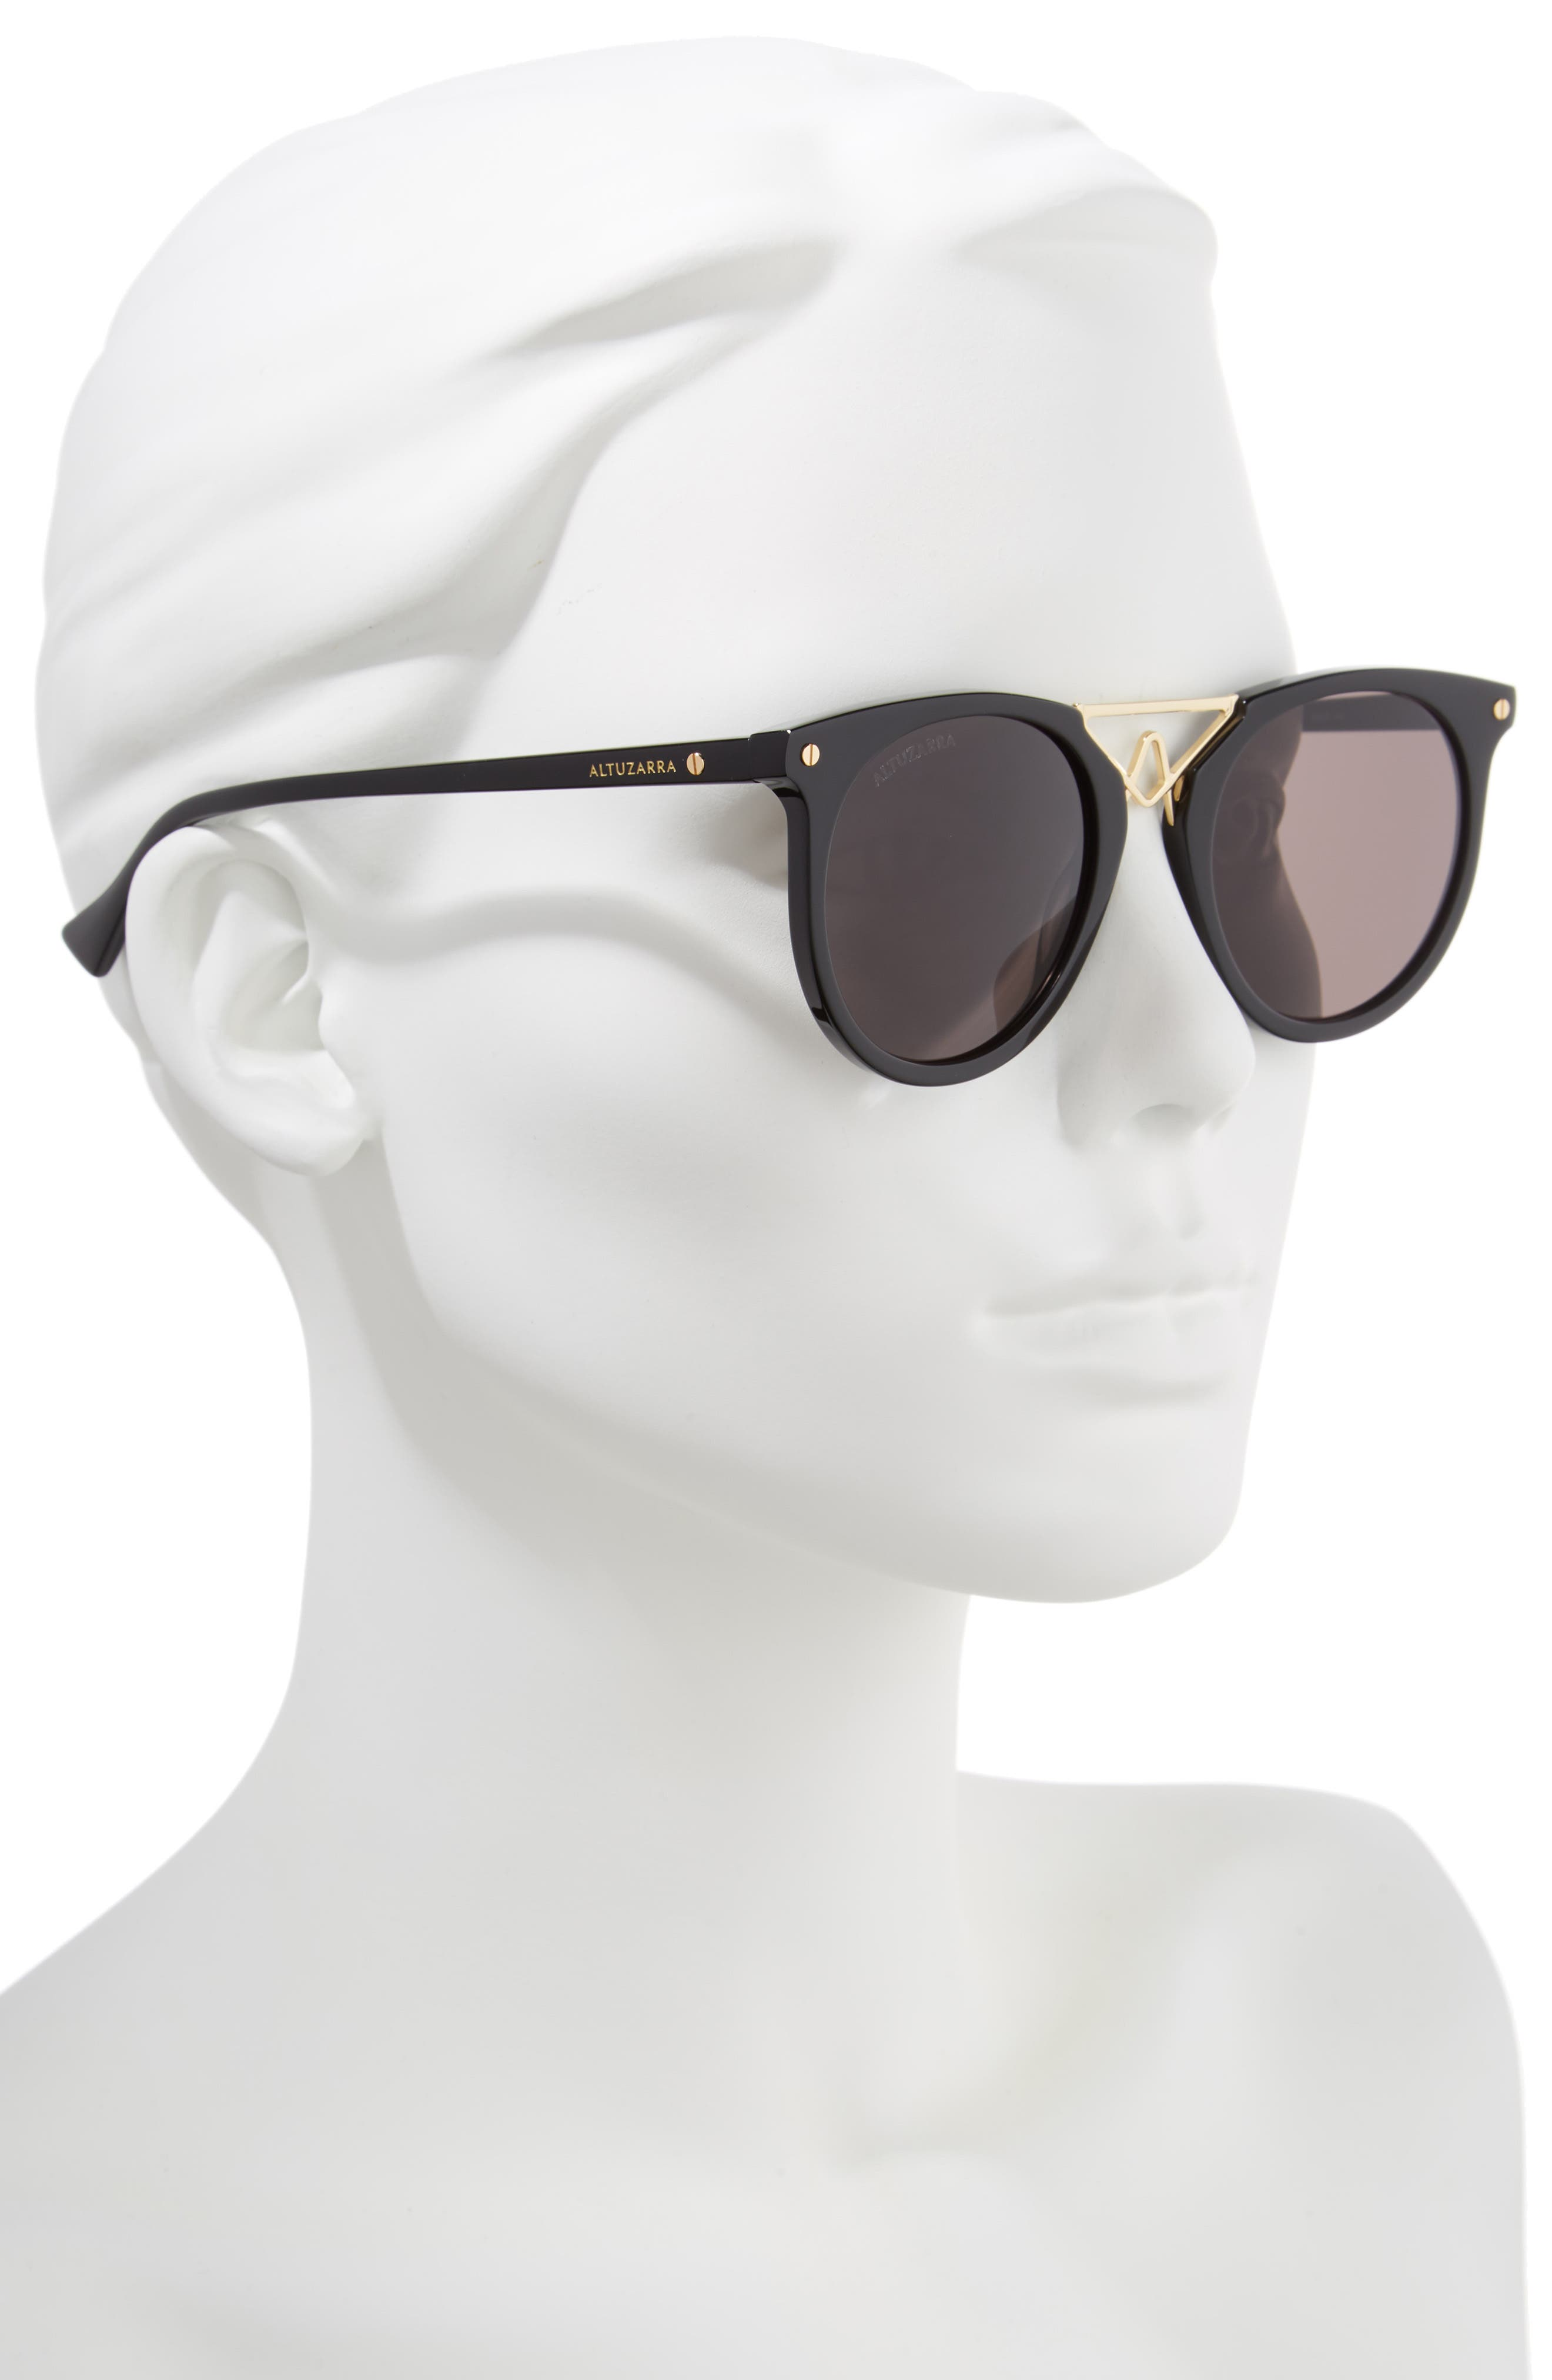 50mm Round Sunglasses,                             Alternate thumbnail 2, color,                             BLACK/ GOLD